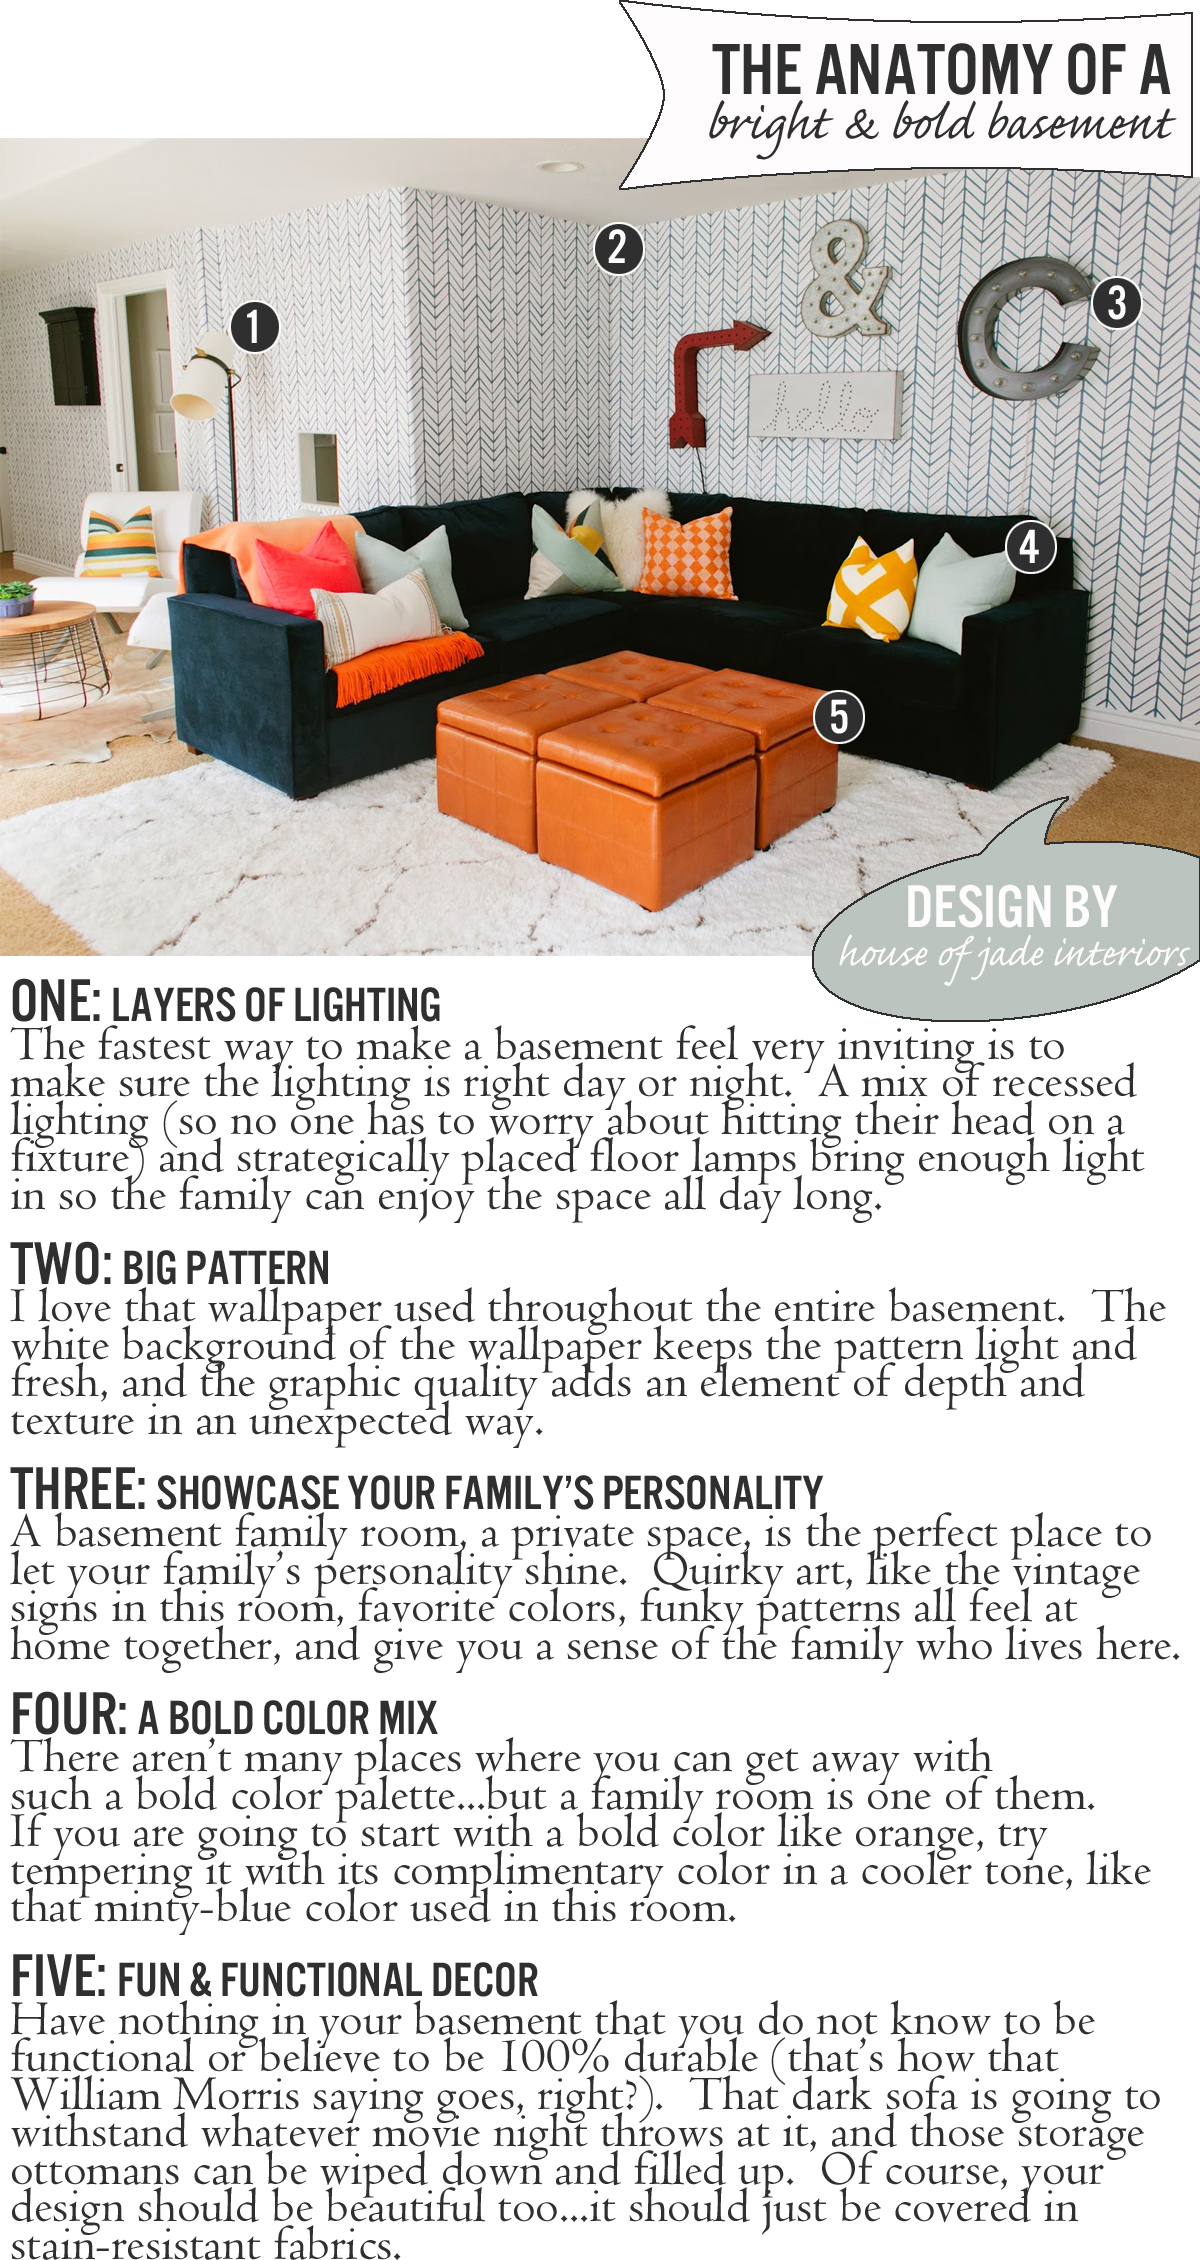 House of Jade Interiors | The Anatomy of Design